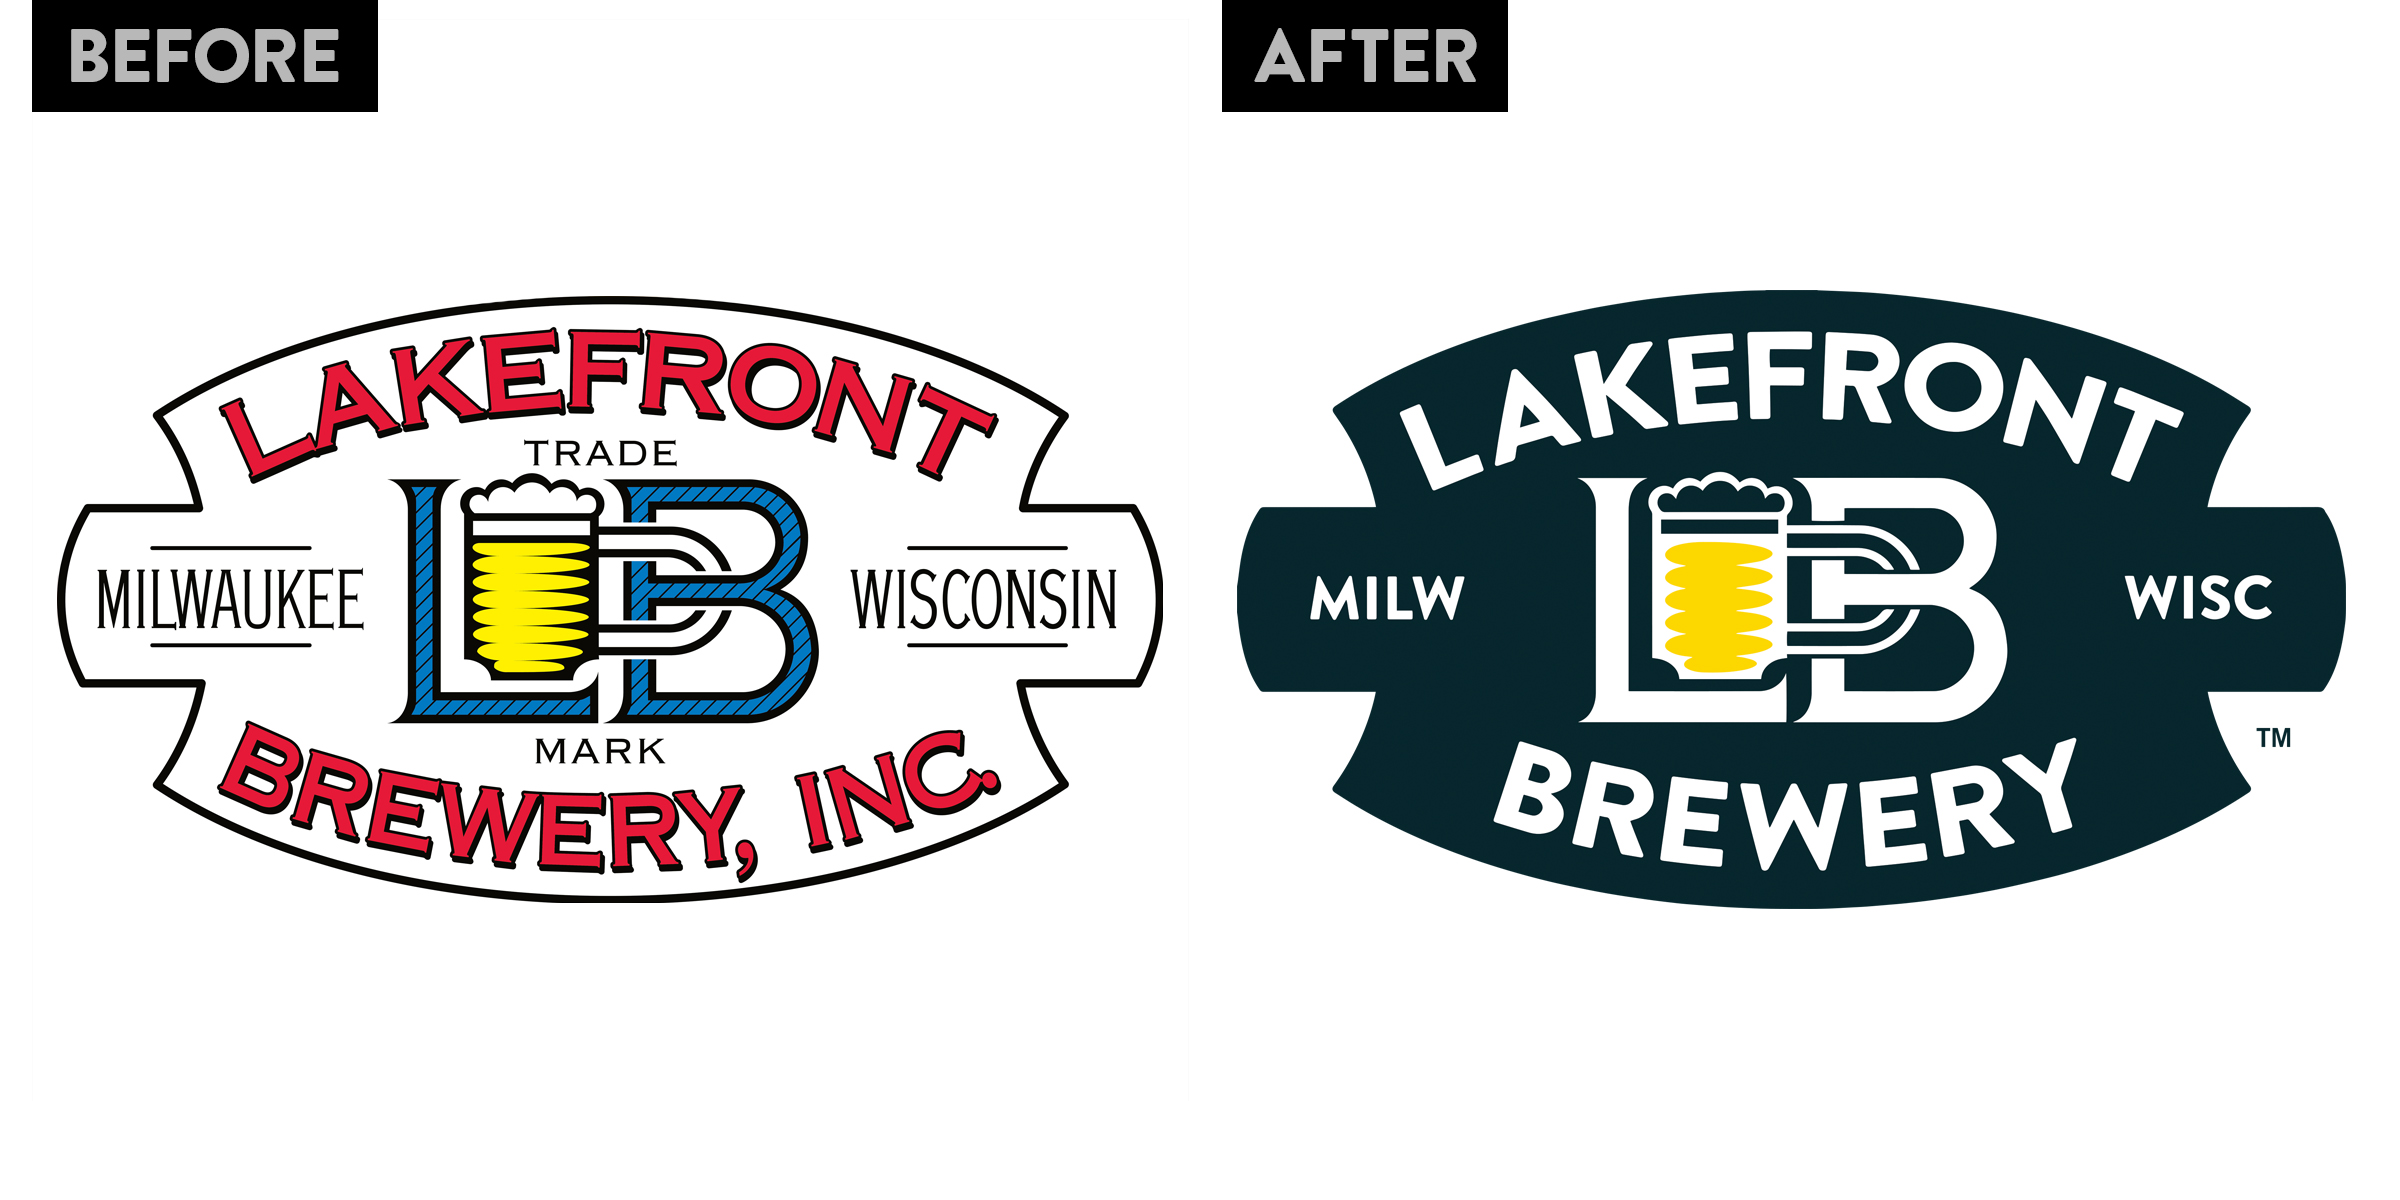 Lakefront Brewery Rebrands